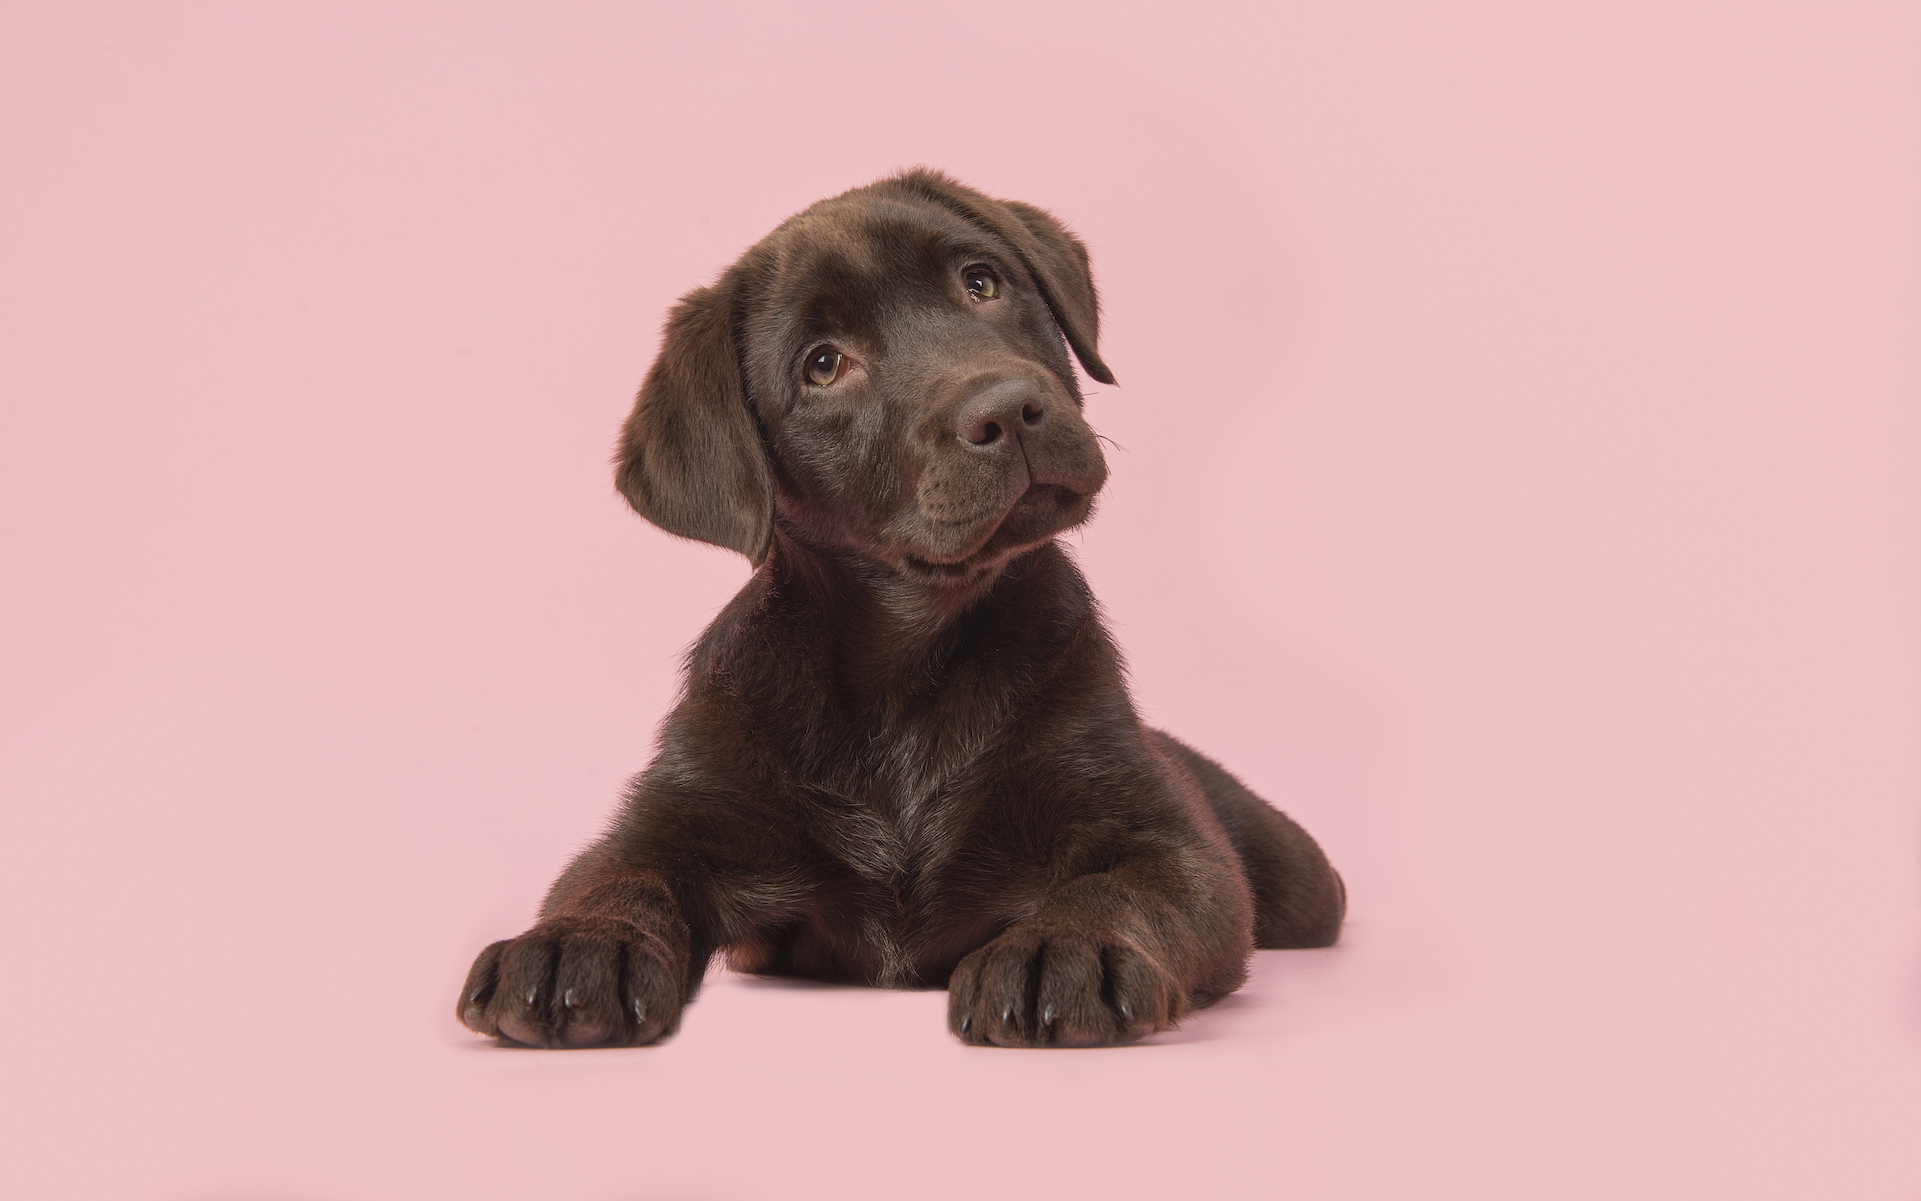 Cannabis topicals for pets; Brown labrador puppy lying down on a pink background